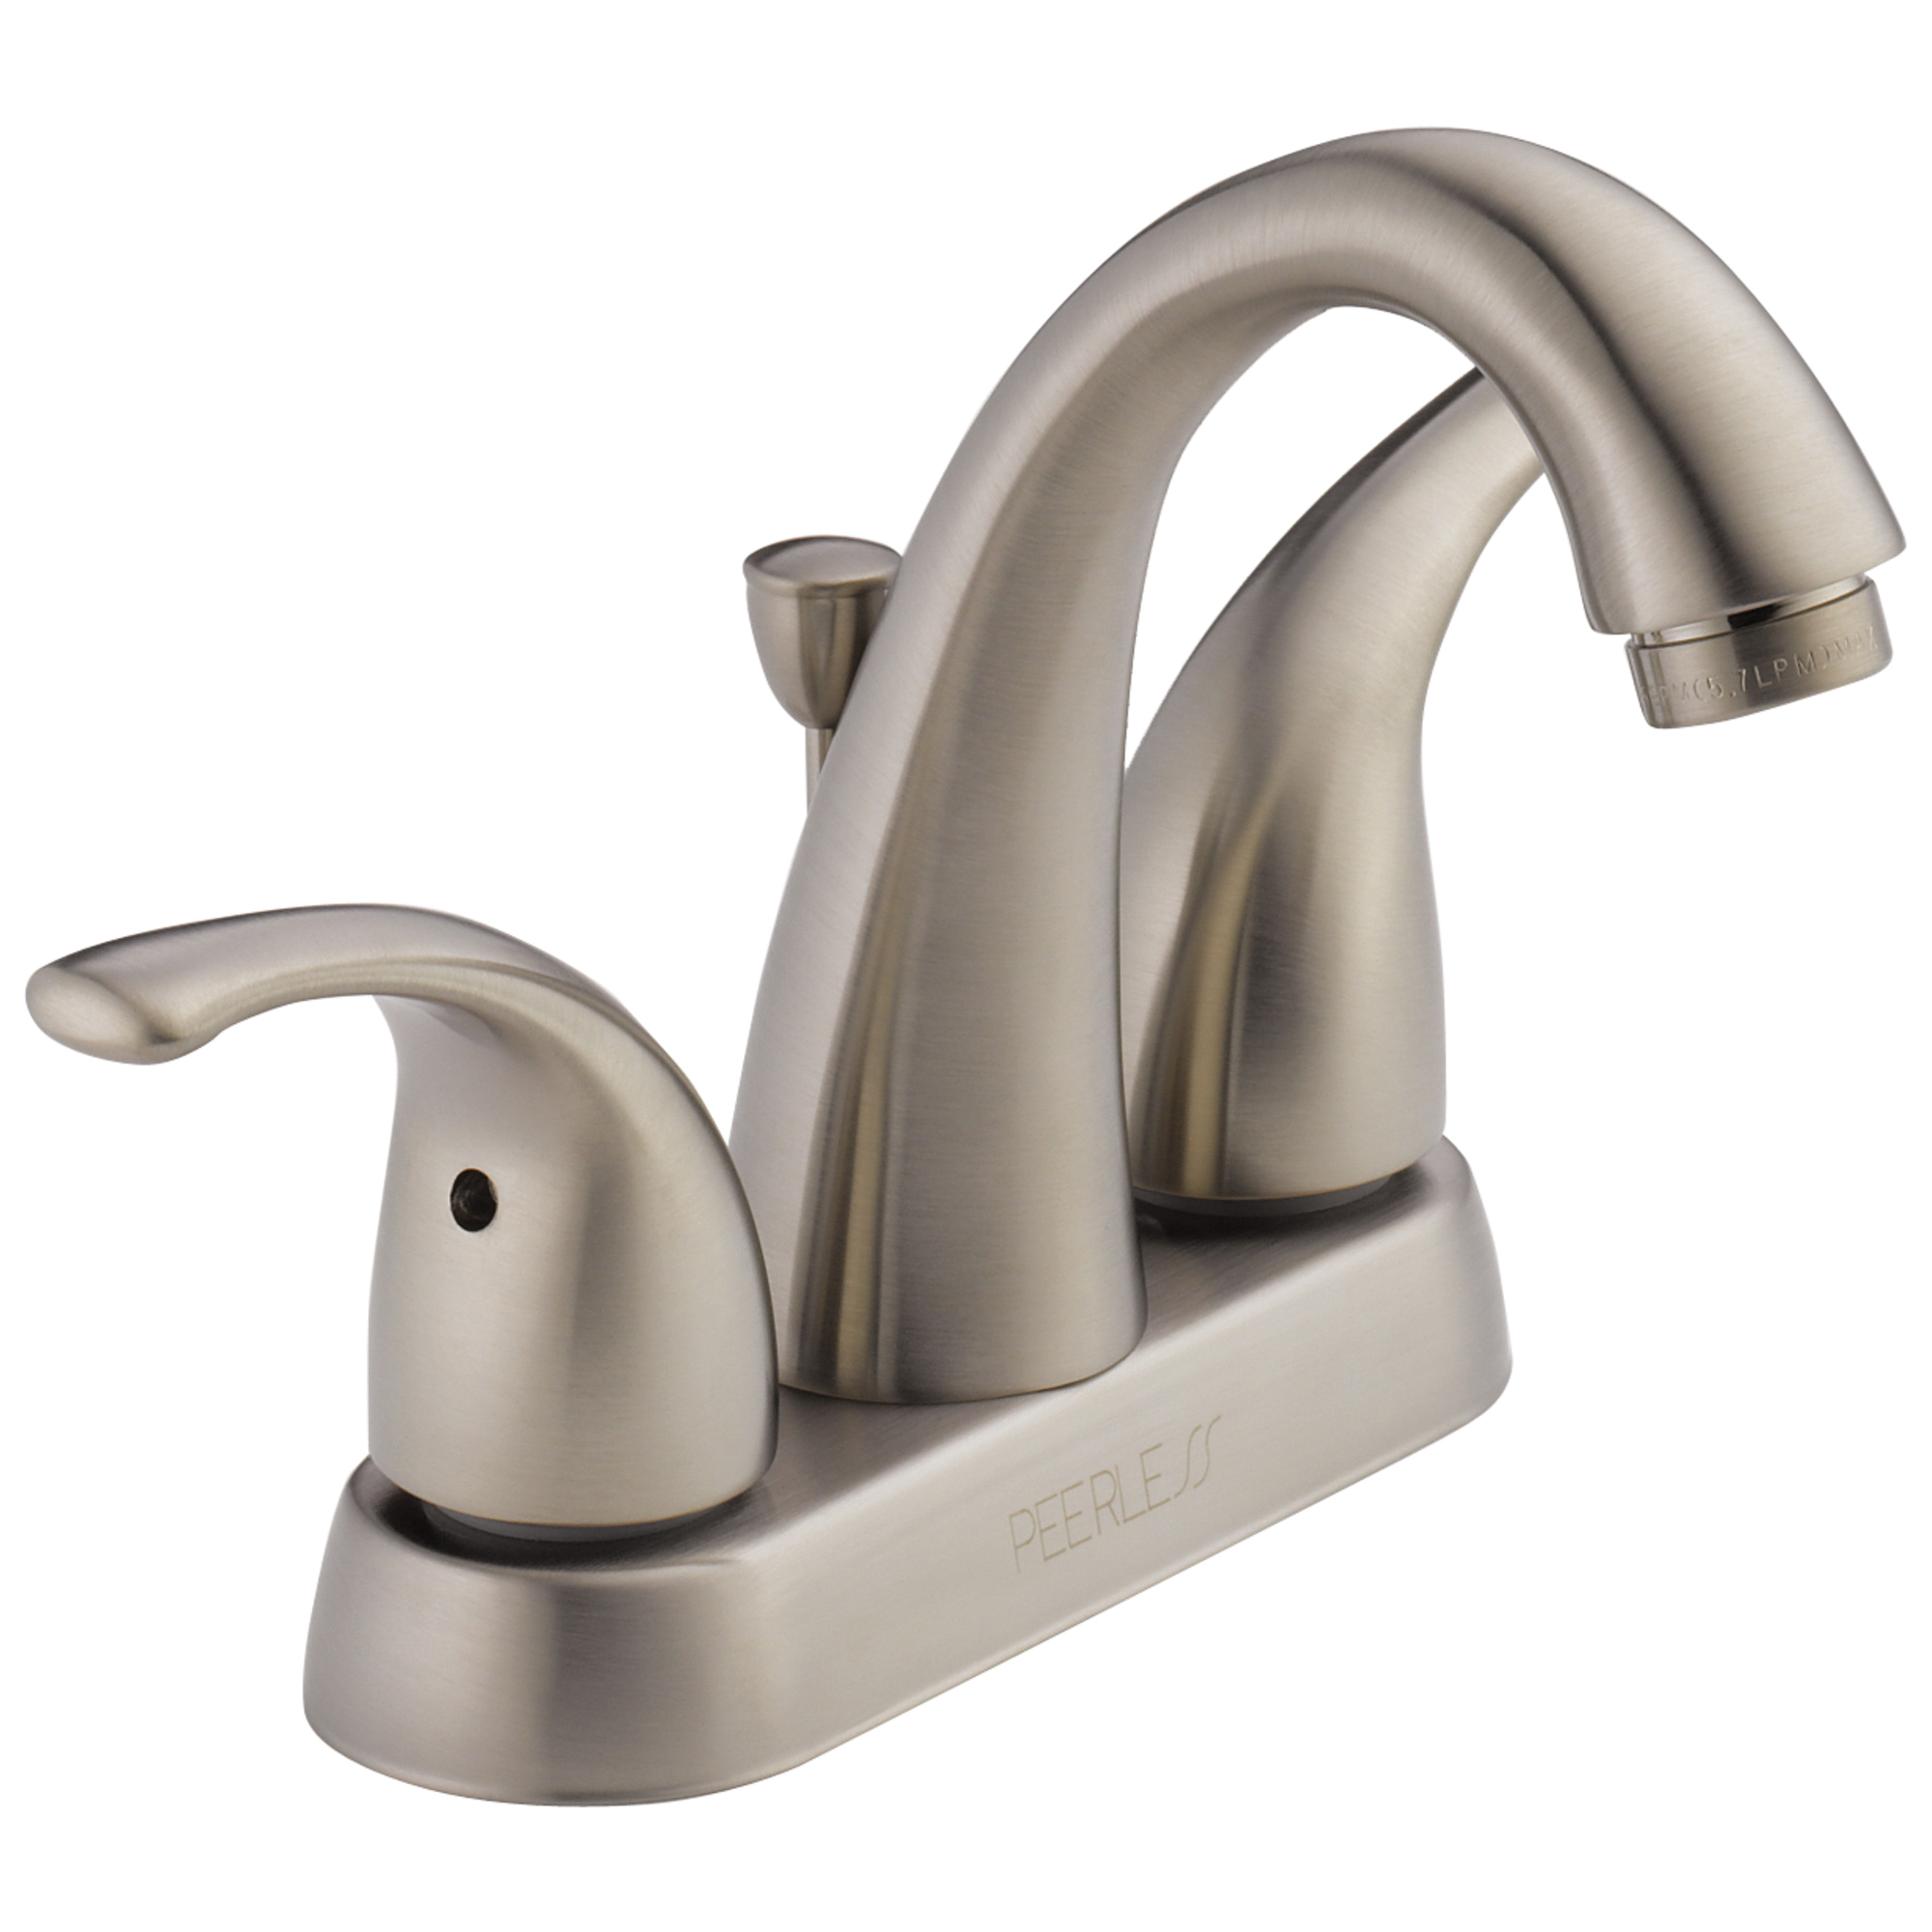 Peerless® P299695LF-BN Centerset Lavatory Faucet, Apex, Brushed Nickel, 2 Handles, Pop-Up Drain, 1.2 gpm